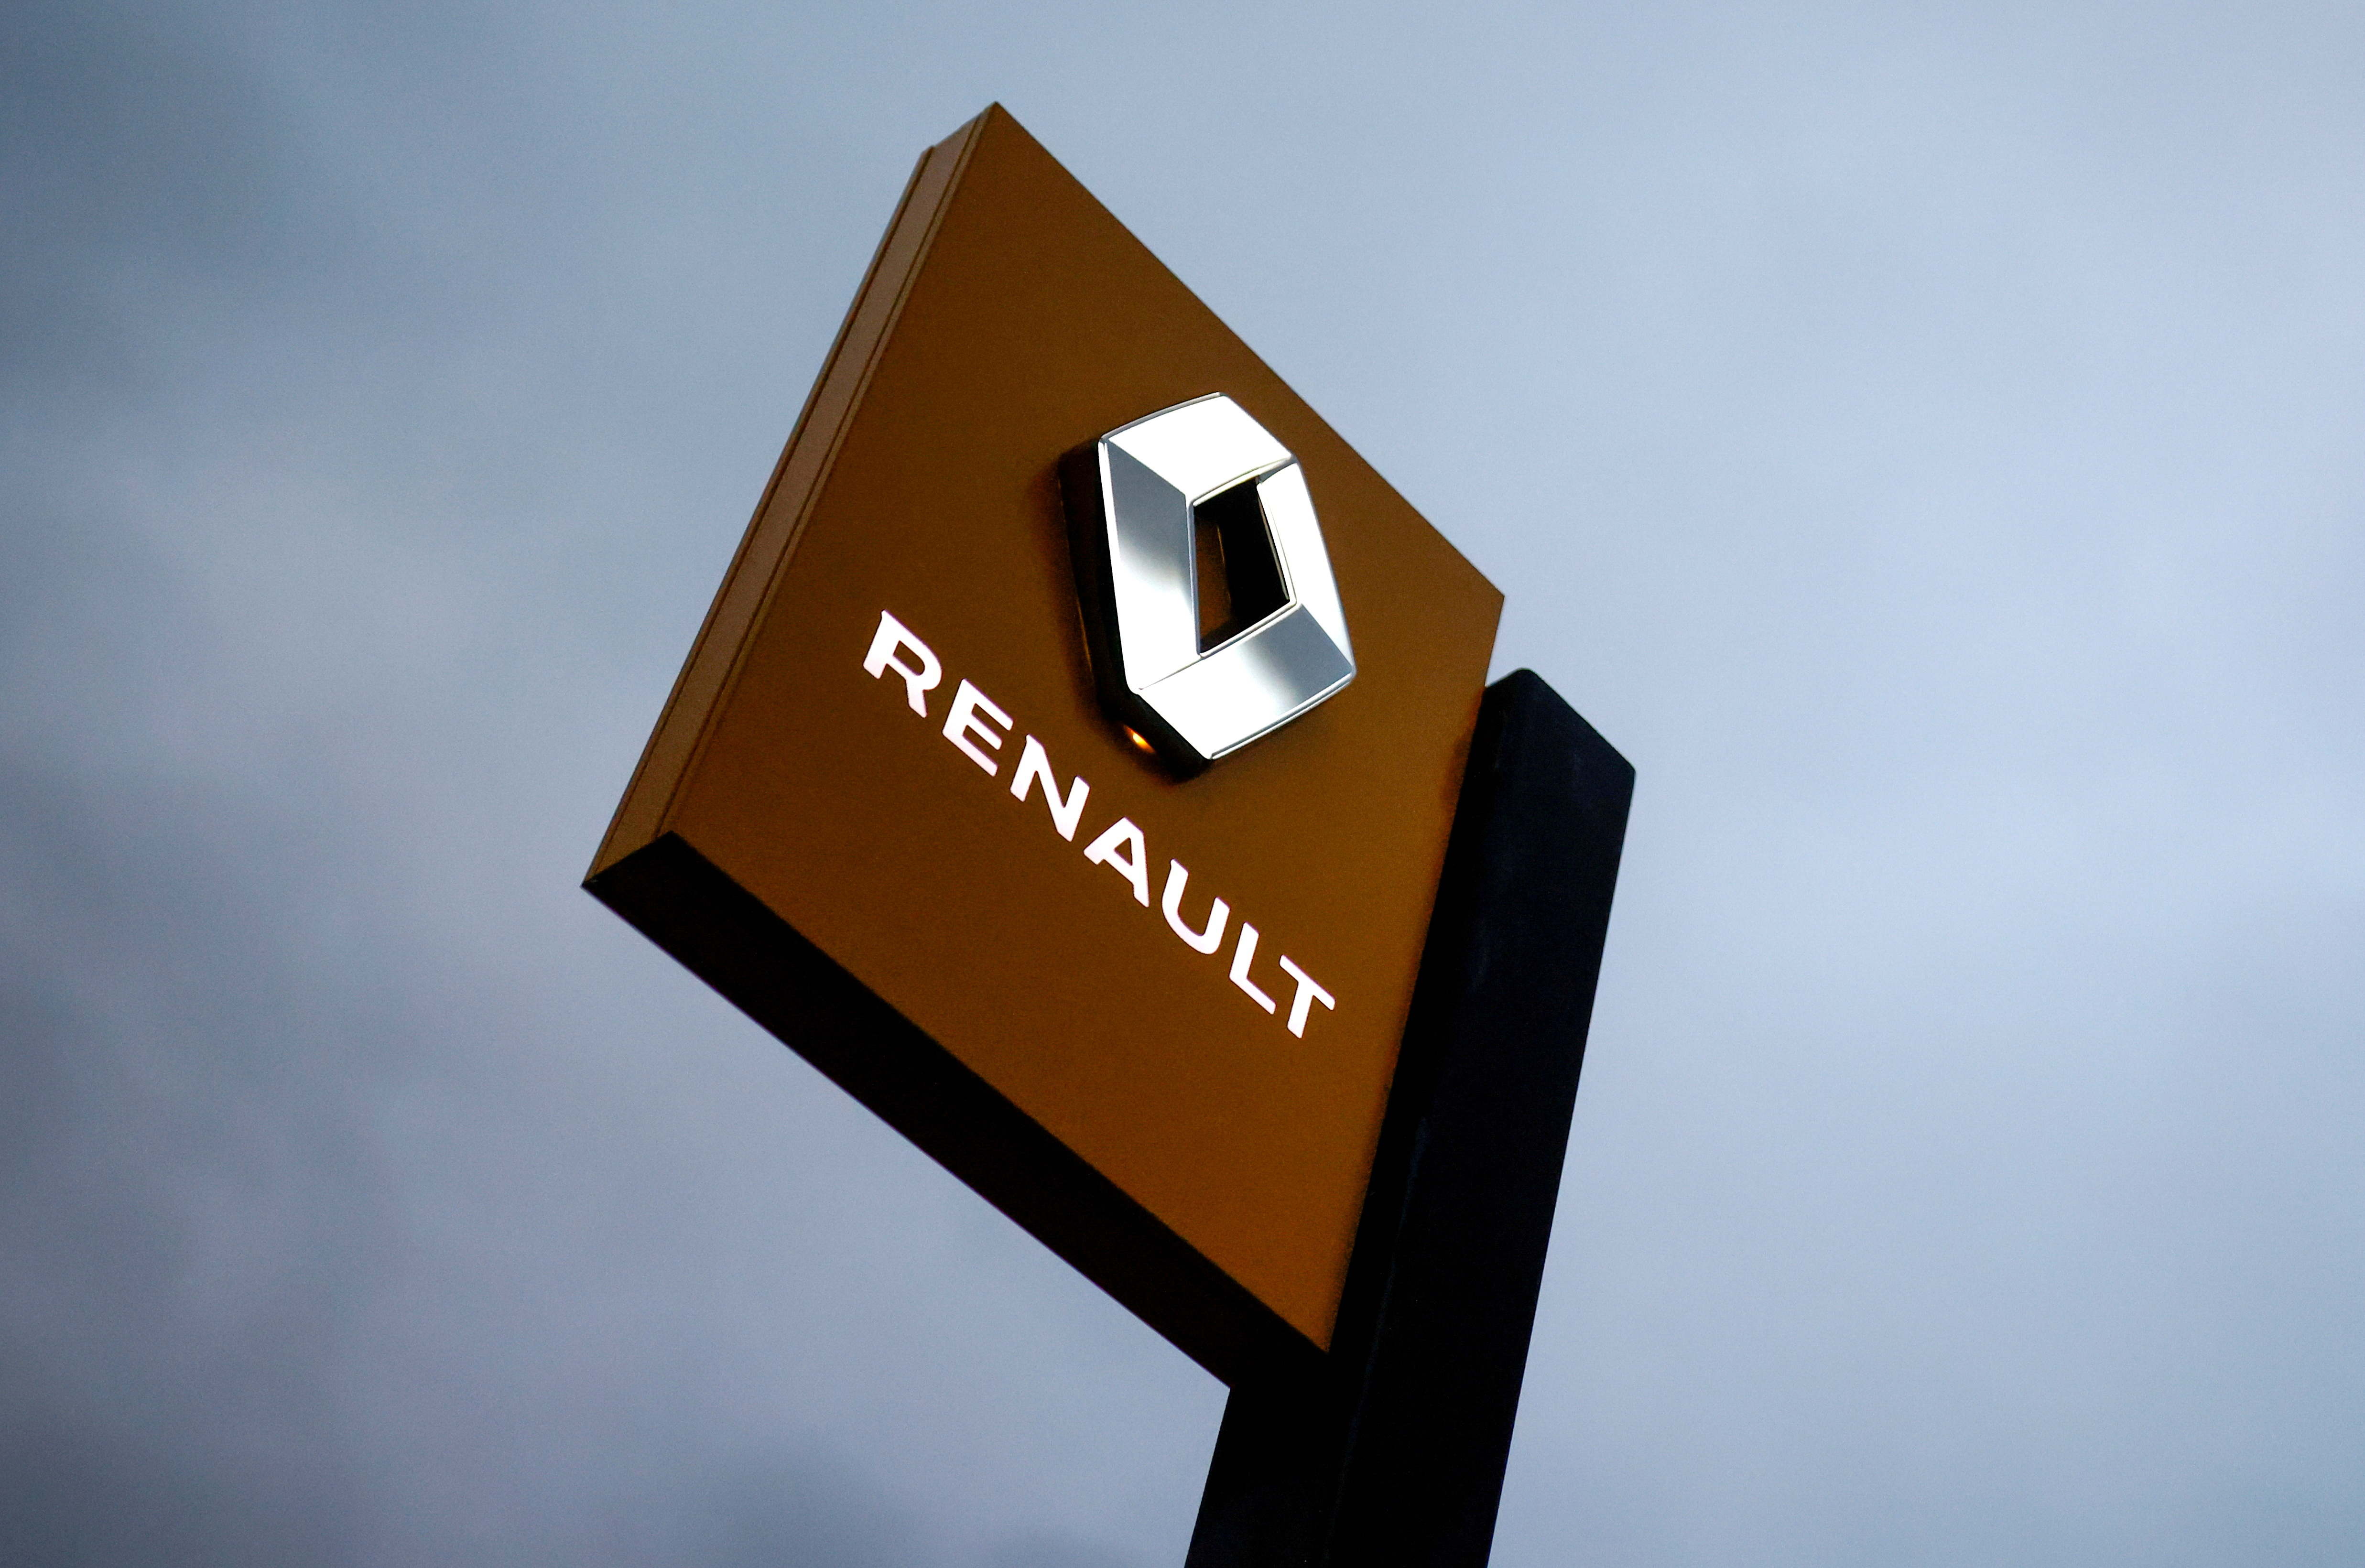 The logo of carmaker Renault is pictured at a dealership in Vertou, near Nantes, France, January 13, 2021. REUTERS/Stephane Mahe